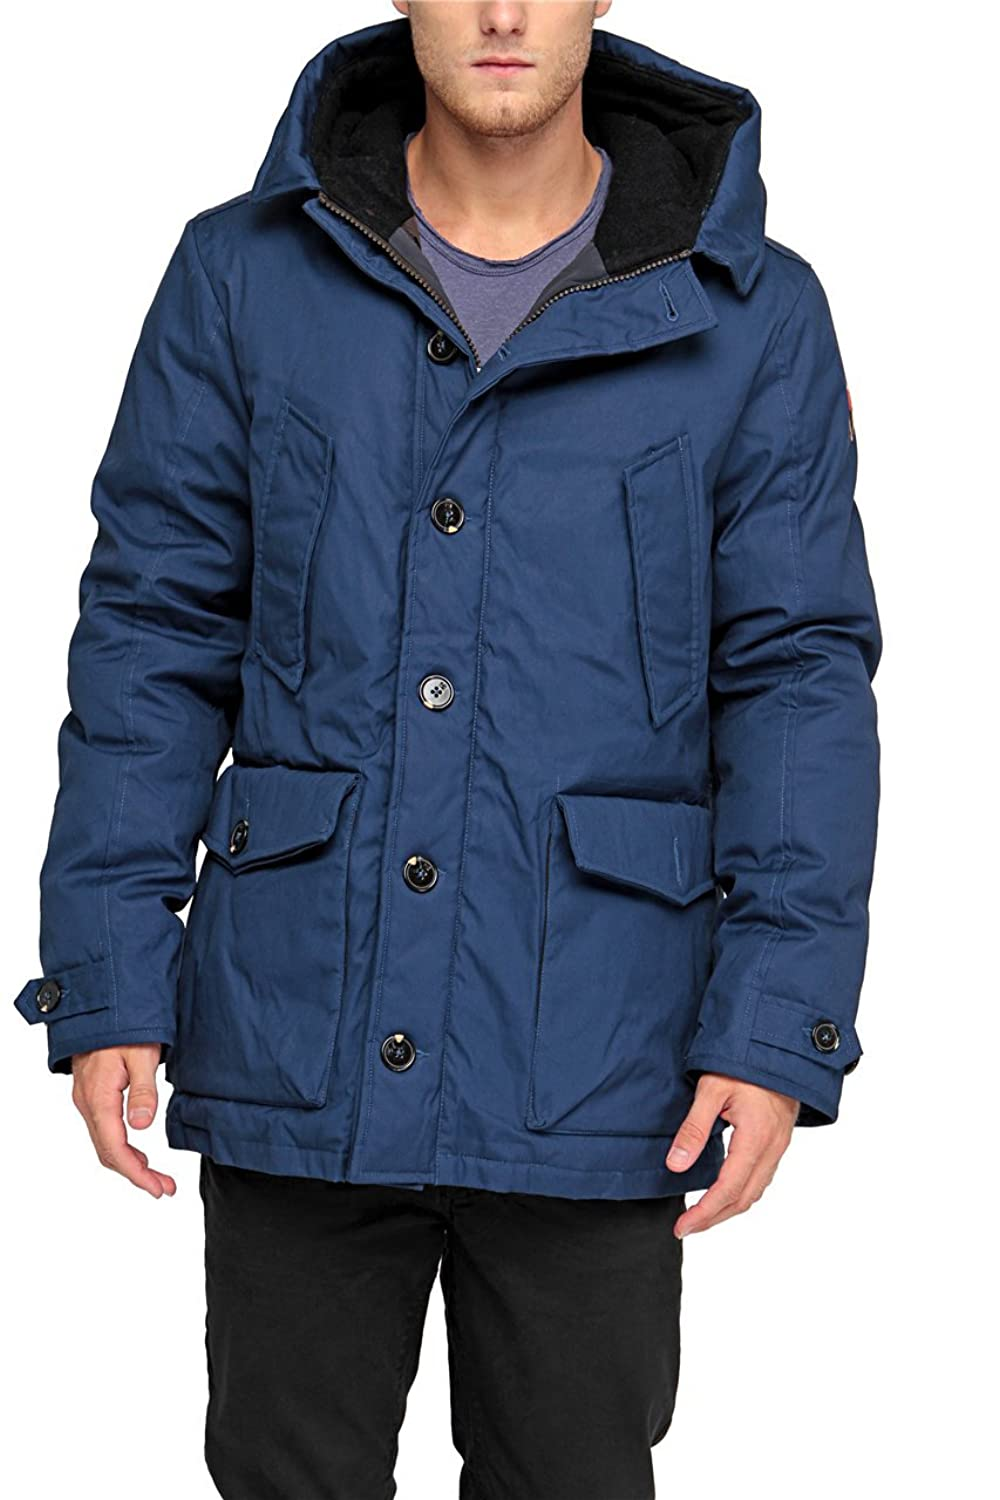 Scotch & Soda Herren Winterjacke , Farbe: Blau